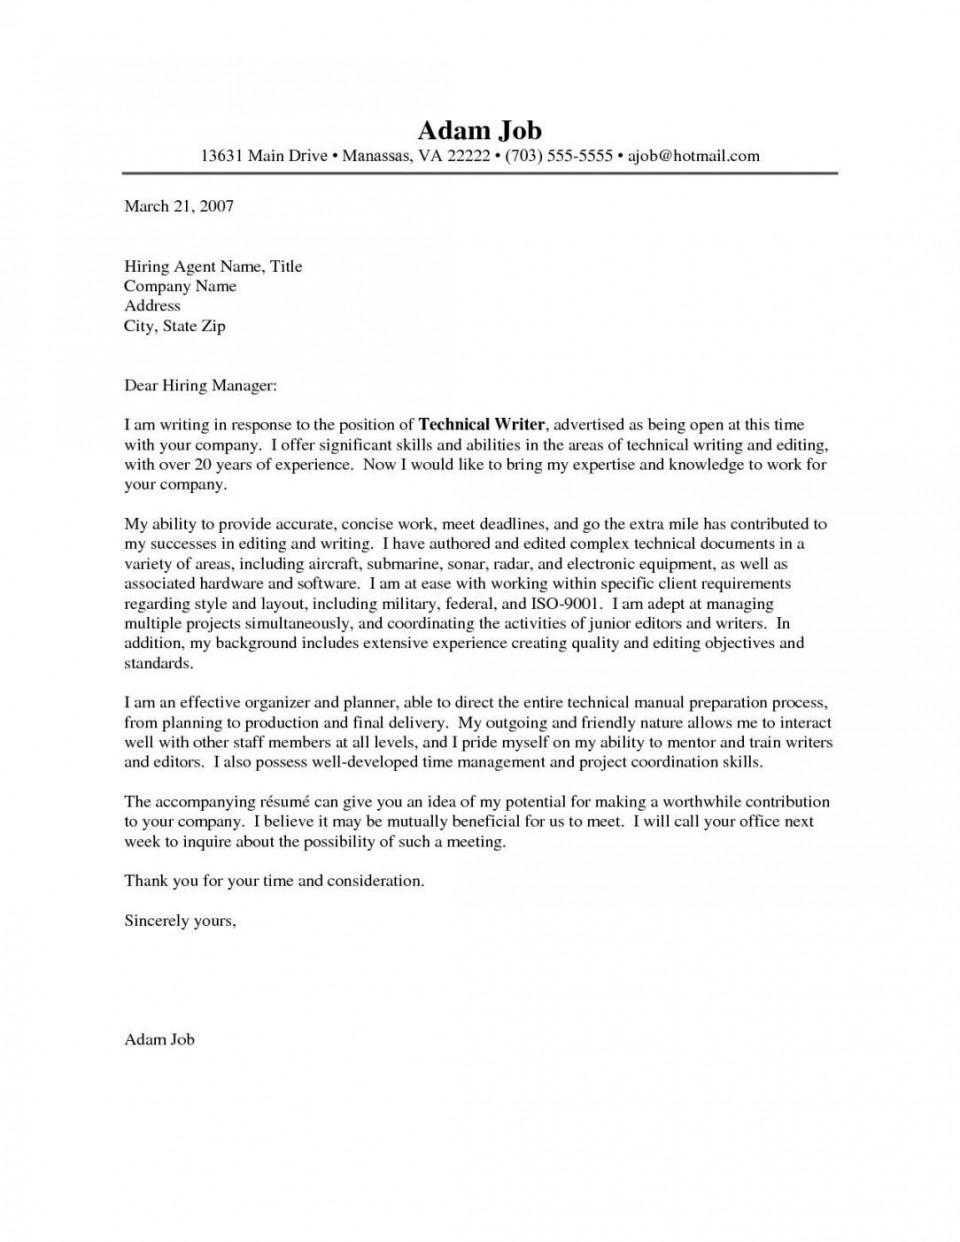 002 Imposing Cover Letter Writing Sample Photo  Example For Content Job Resume960